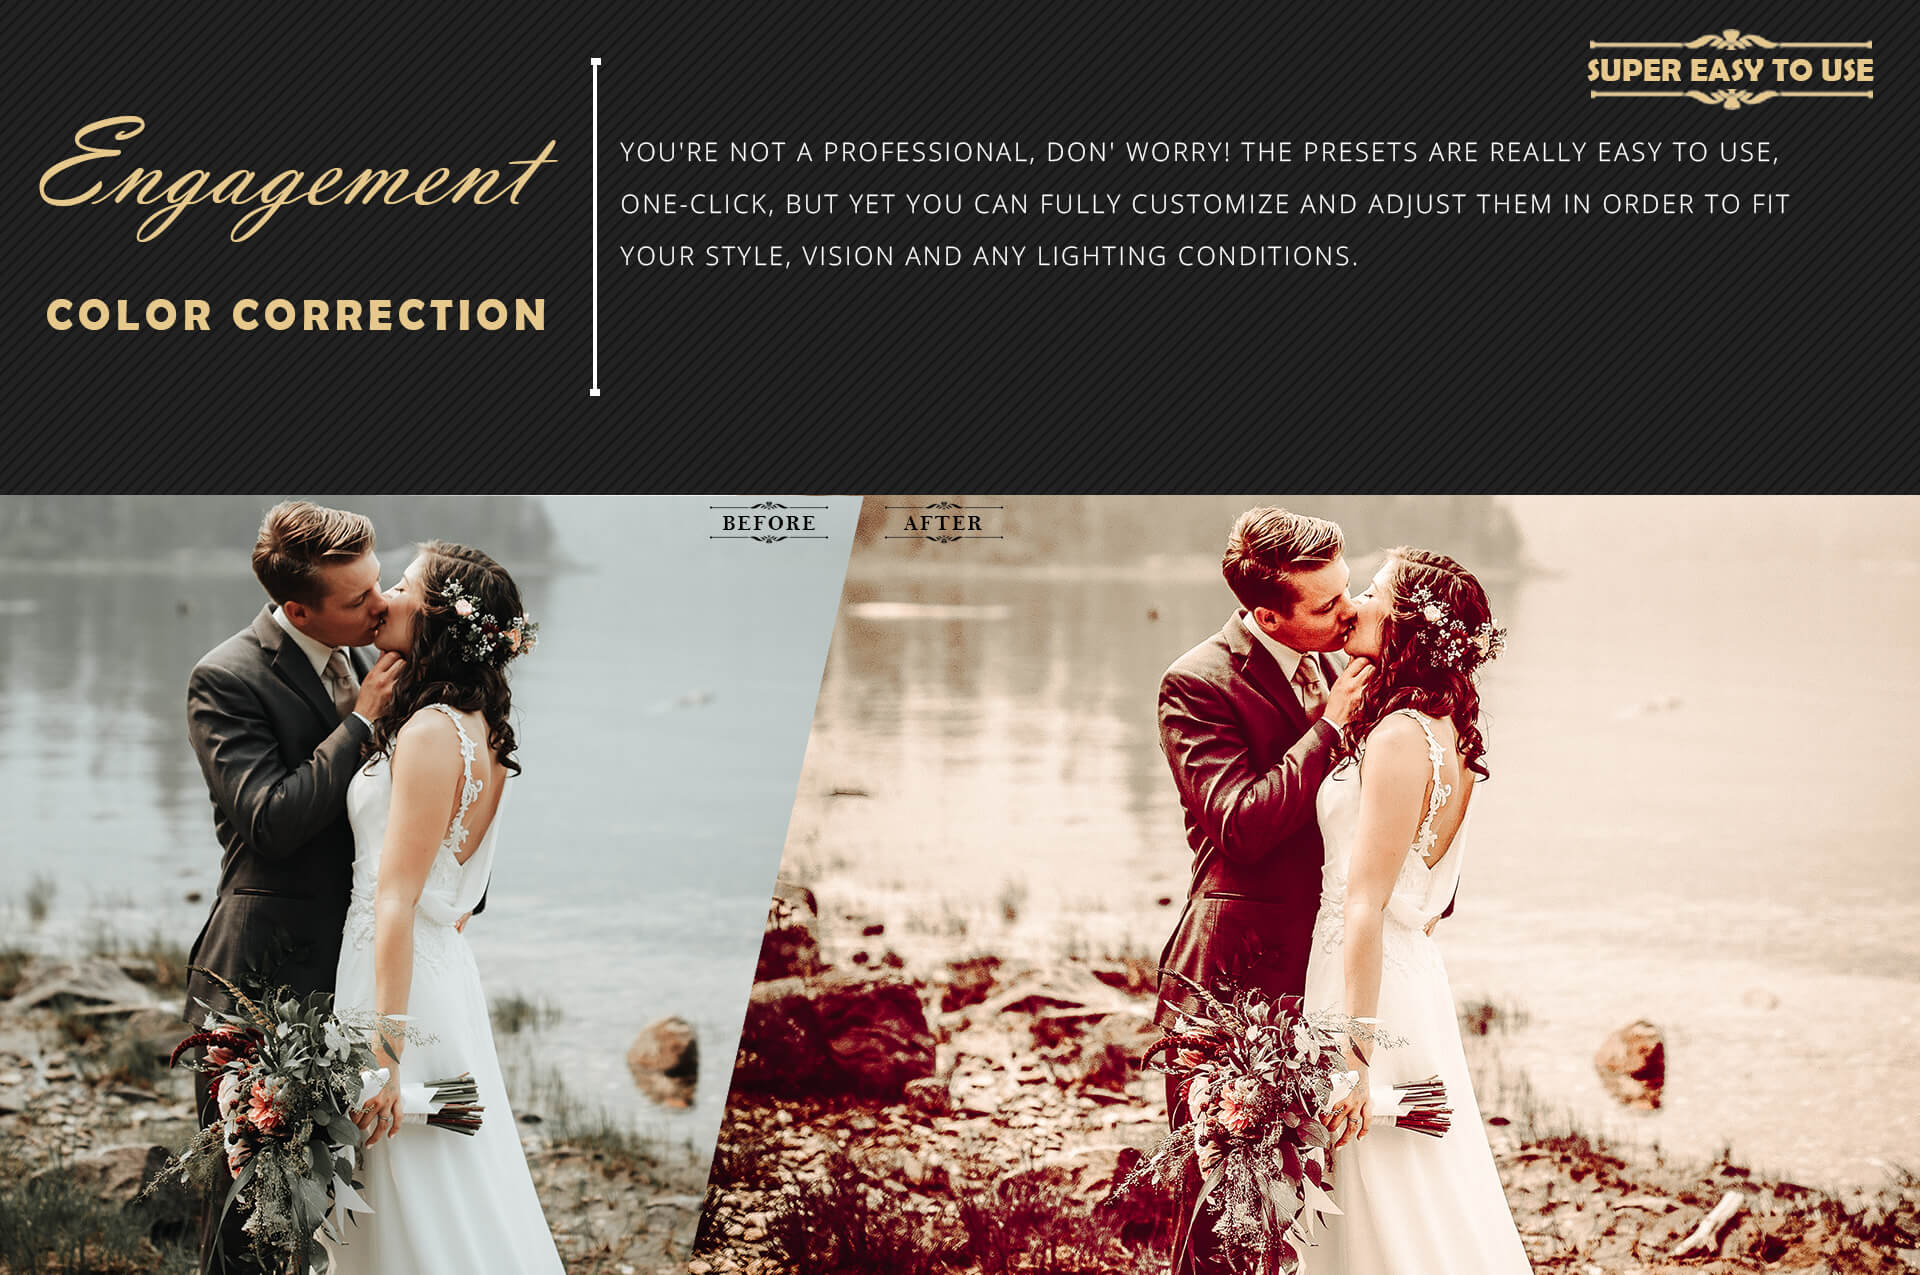 Engagement color grading lightroom presets theme example image 5